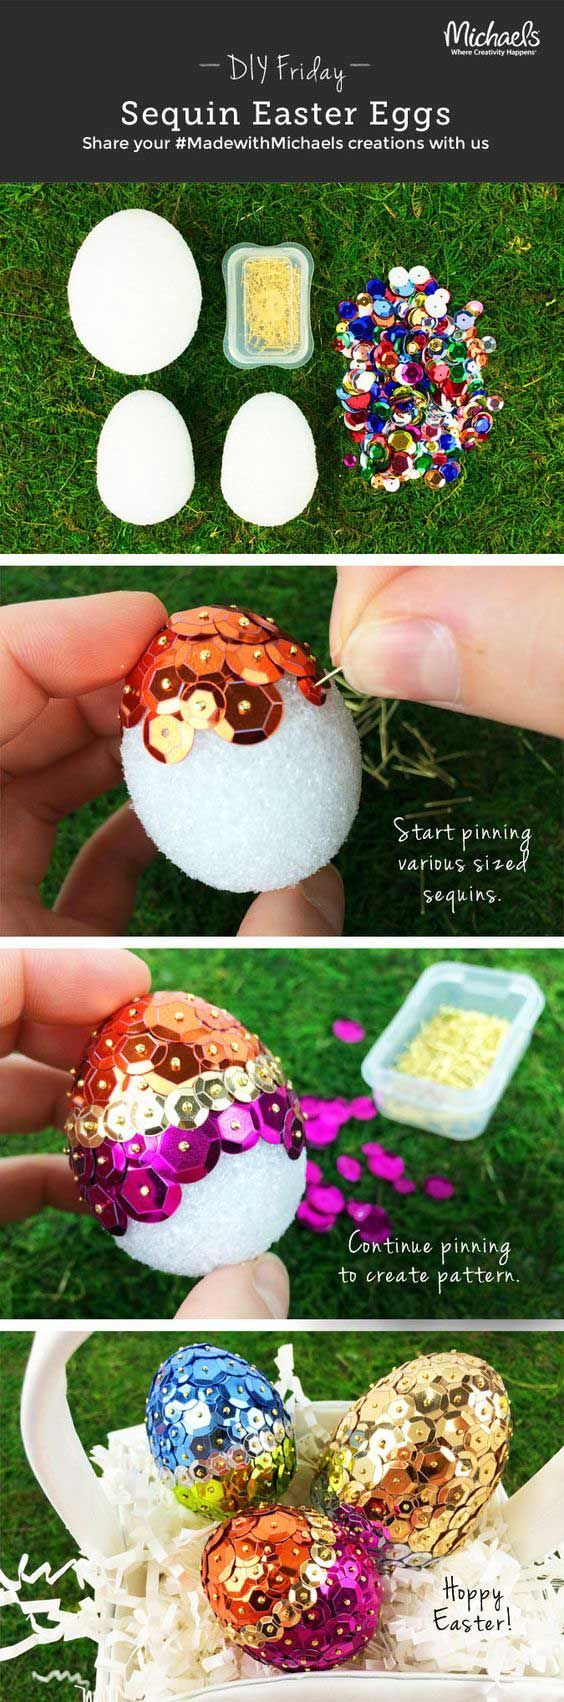 18. Sparkly Easter Eggs using sequins  ---- DIY Easter Eggs Tutorials